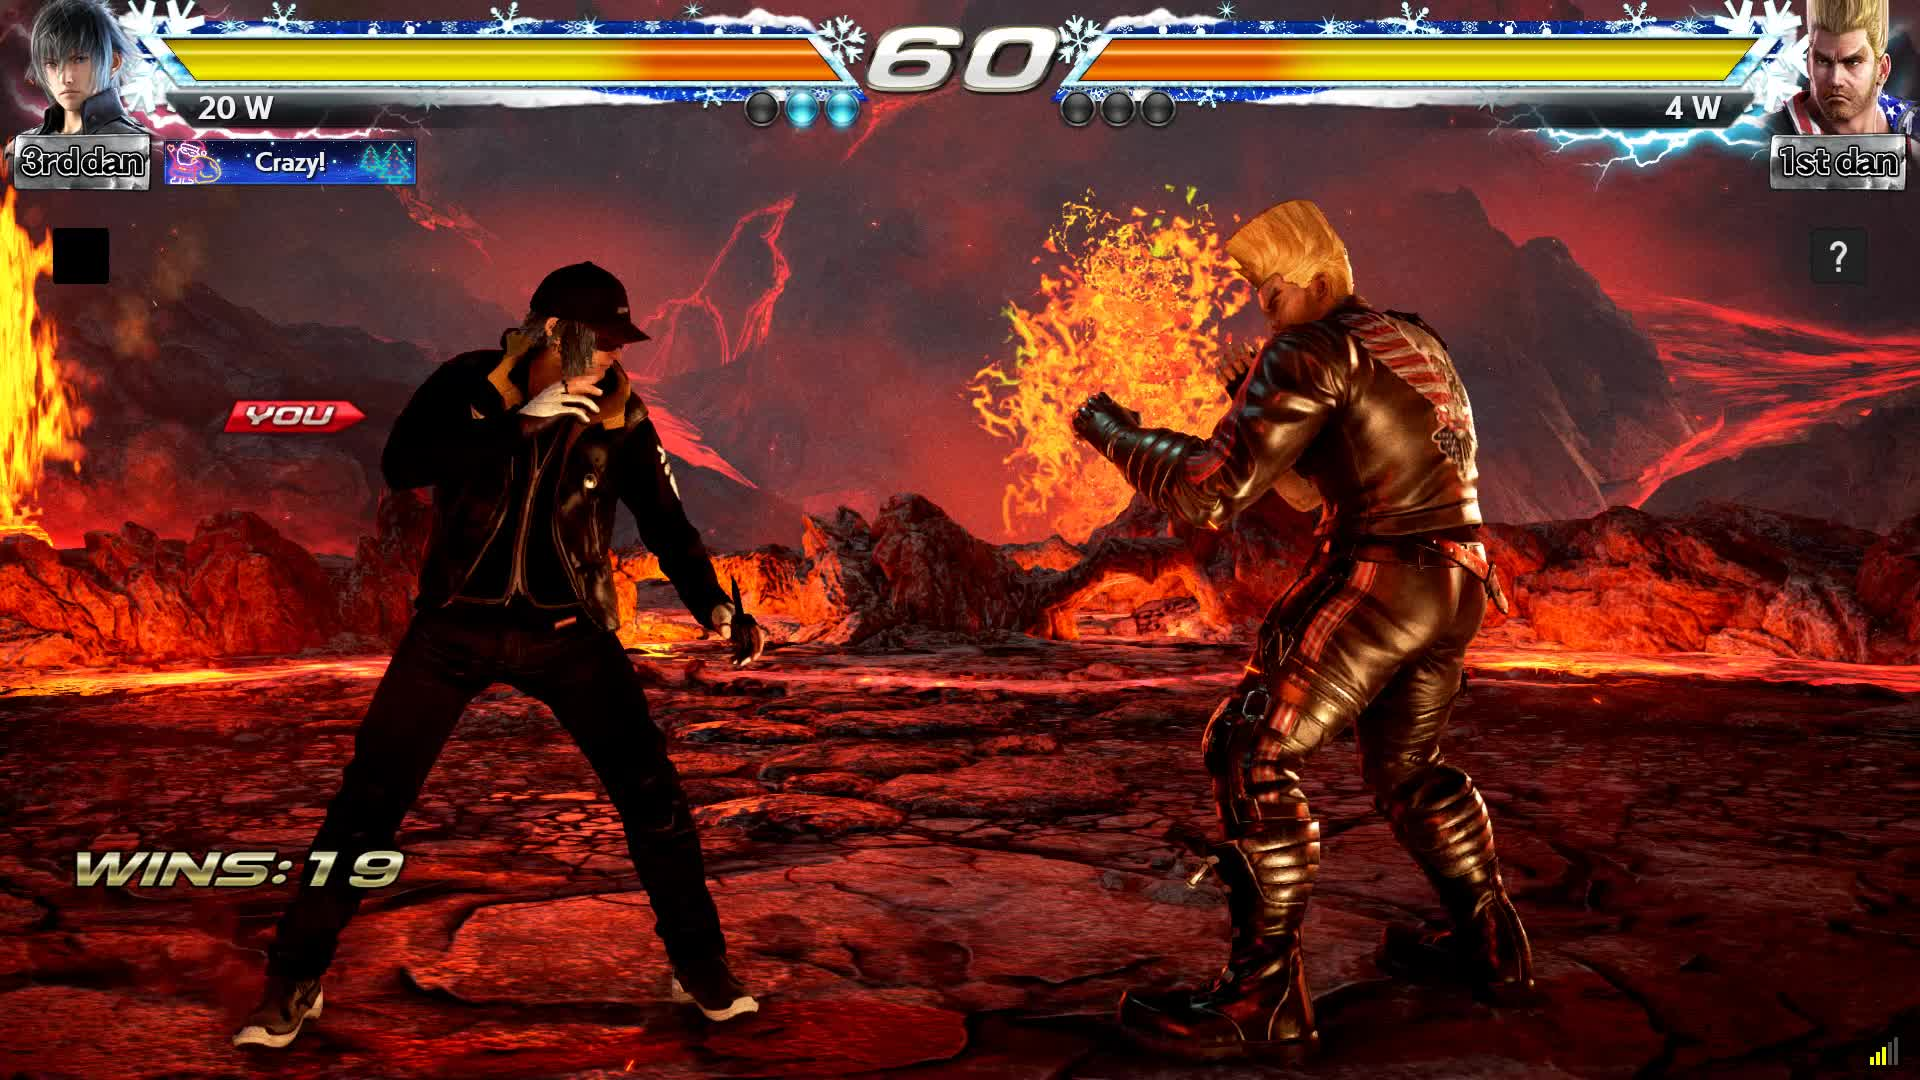 Tekken 7 Gifs Search | Search & Share on Homdor